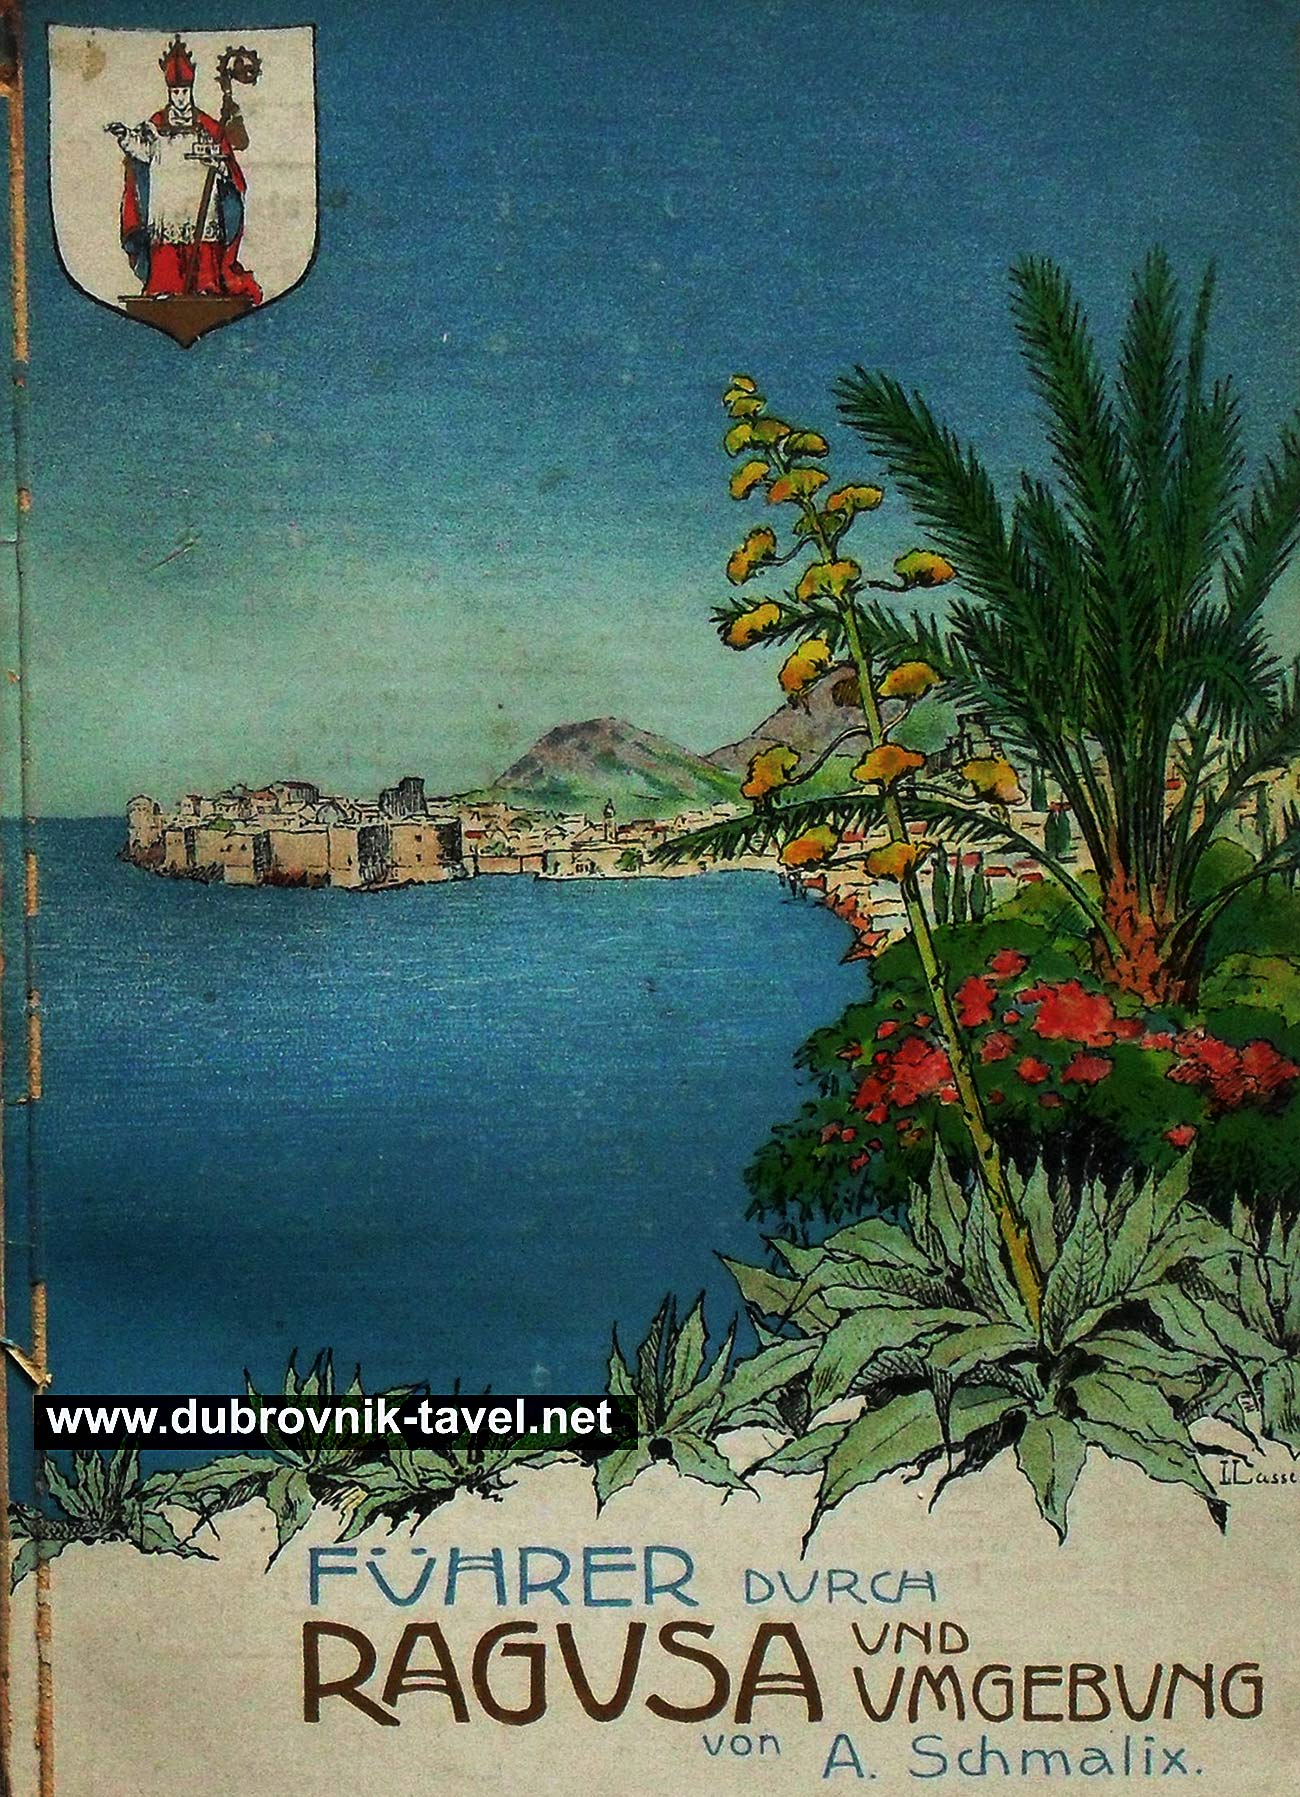 Travel Guide to Dubrovnik from 1906